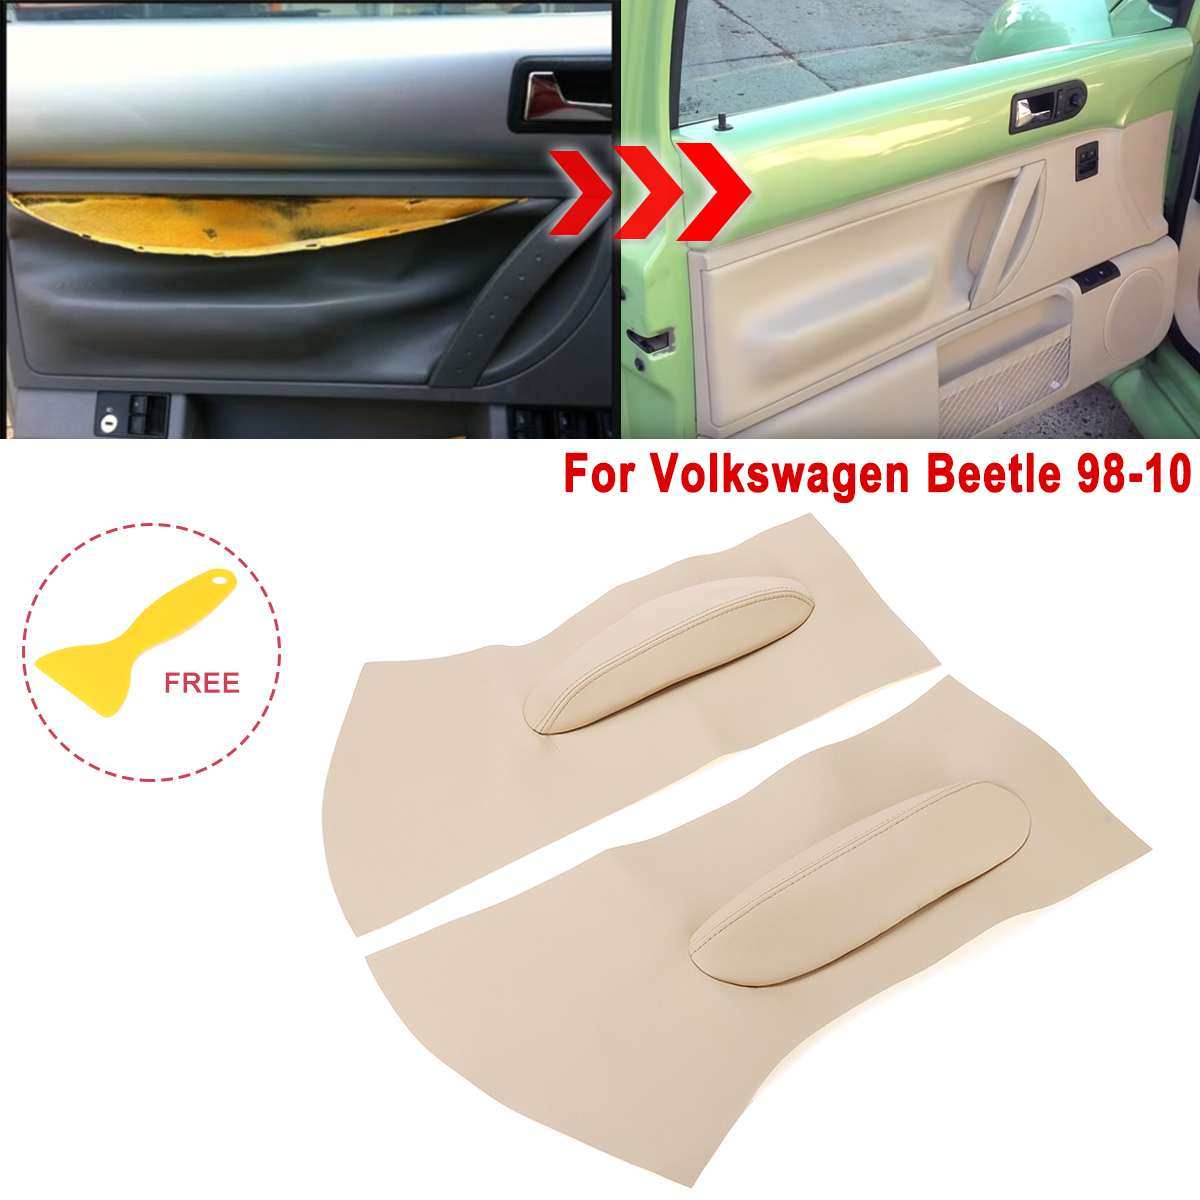 PINK LEATHER 2X FRONT DOOR CARD TRIM  COVERS FITS VW BEETLE 1998-2010